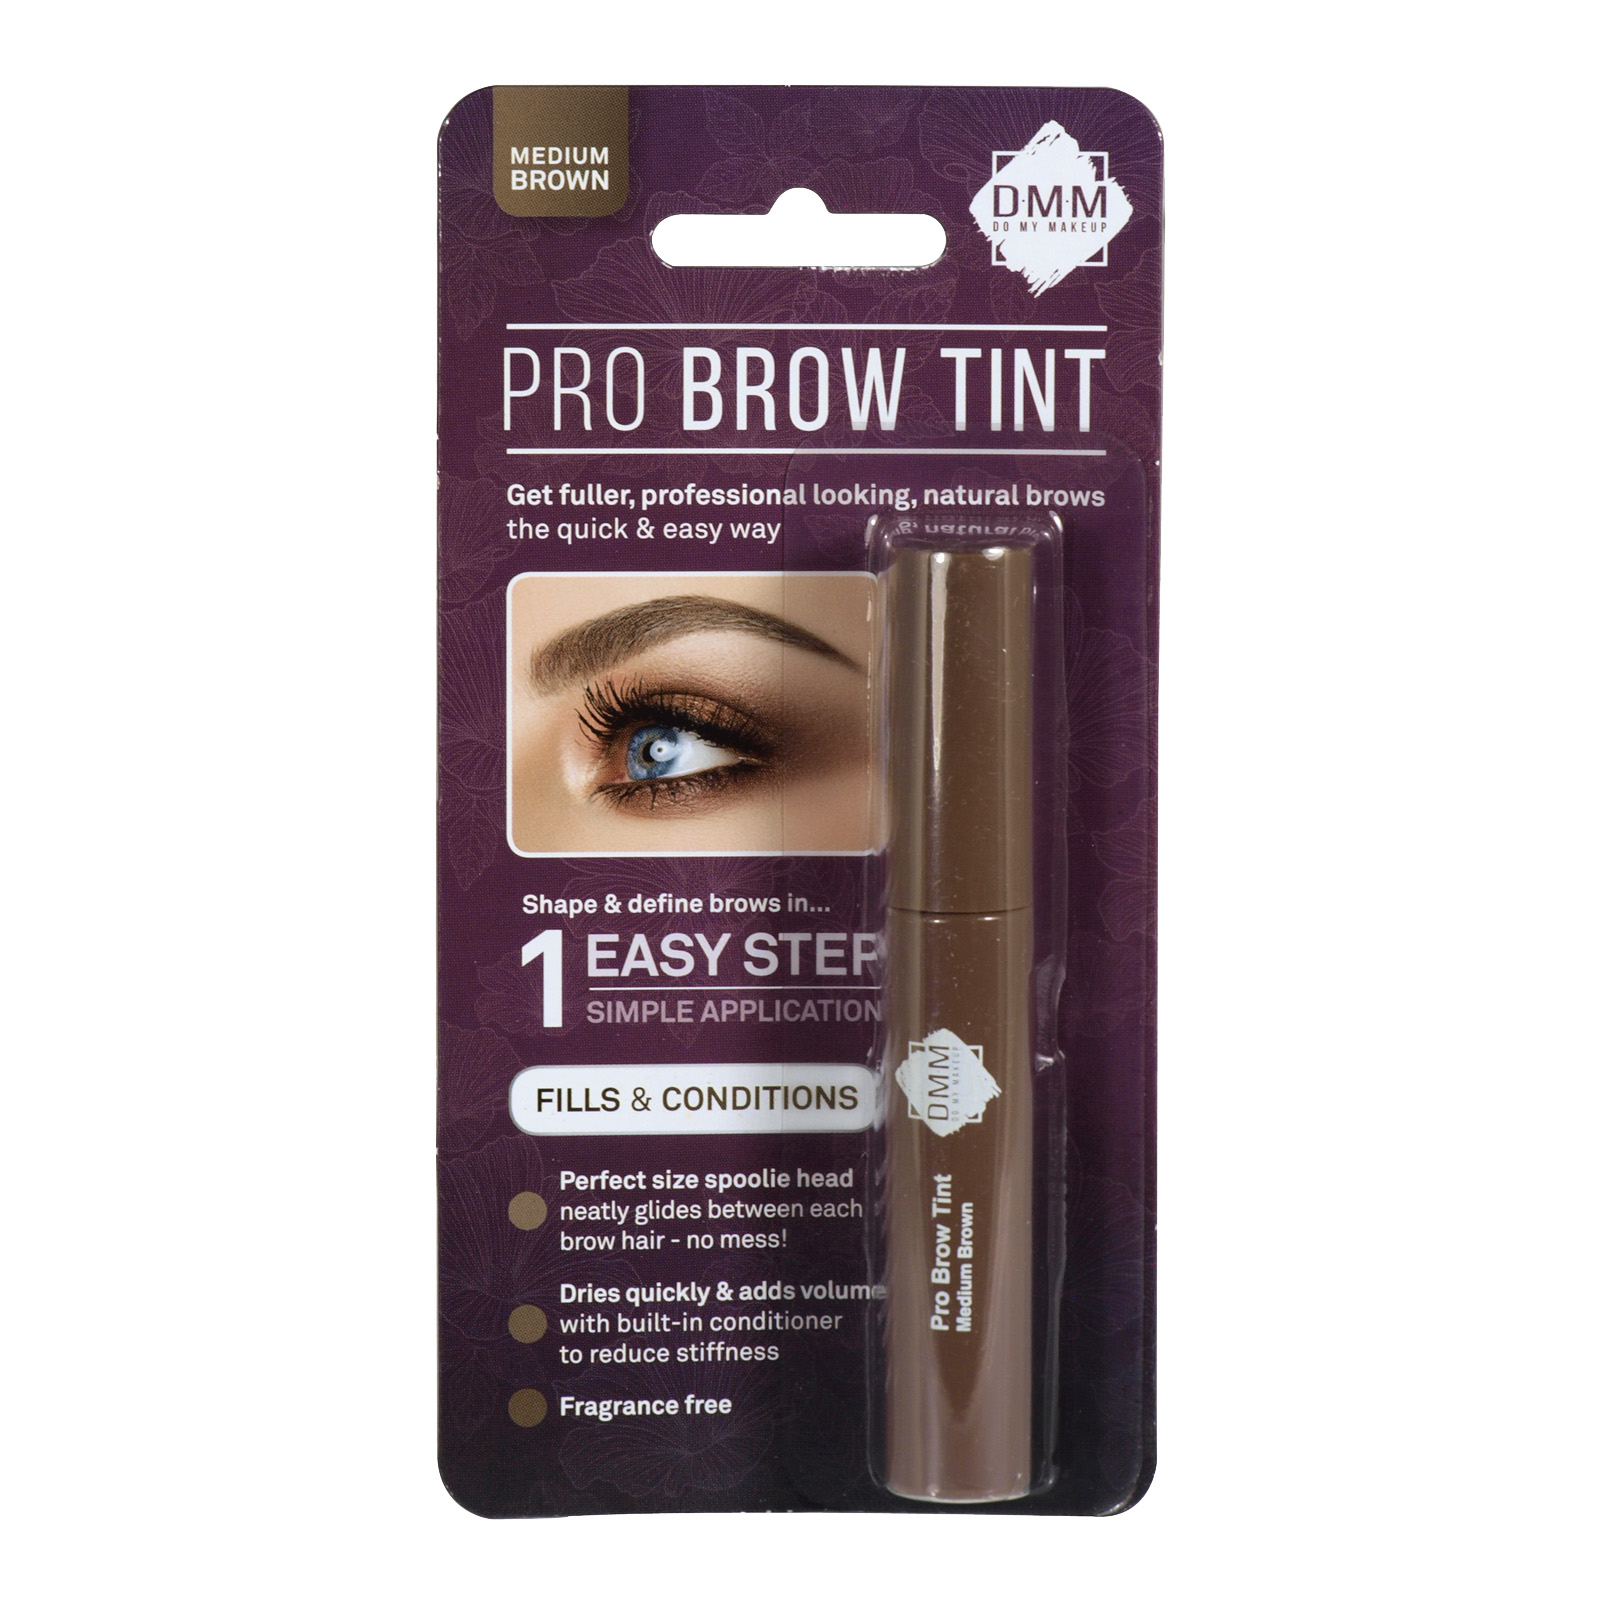 DMM PRO BROW TINT MIX MEDIUM BROWN